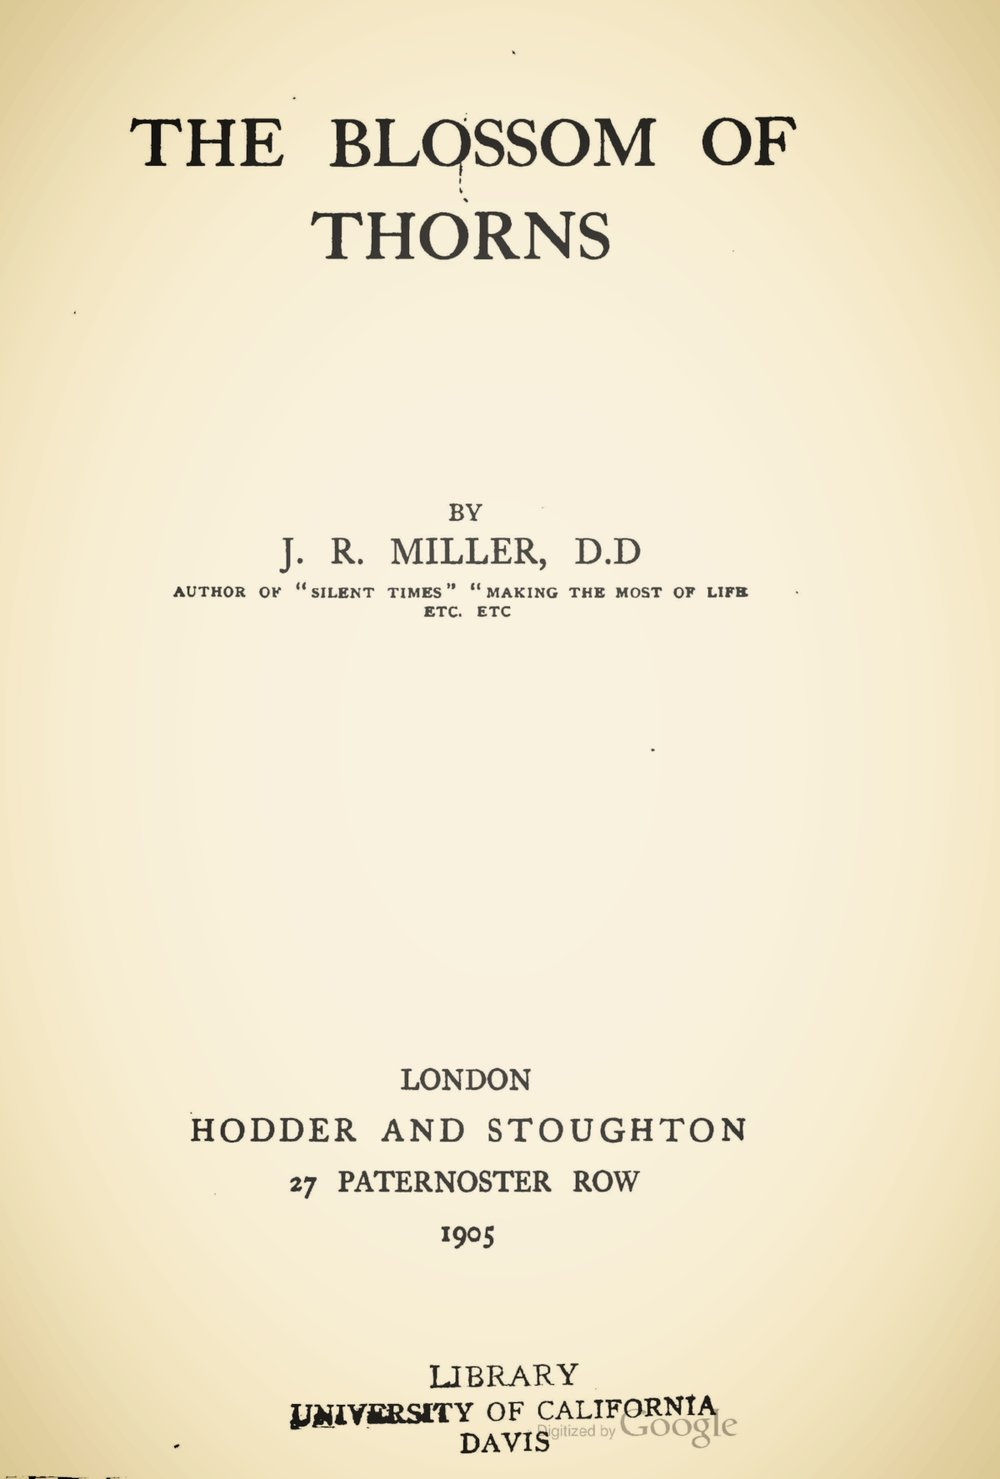 Miller, James Russell, The Blossom of Thorns Title Page.jpg